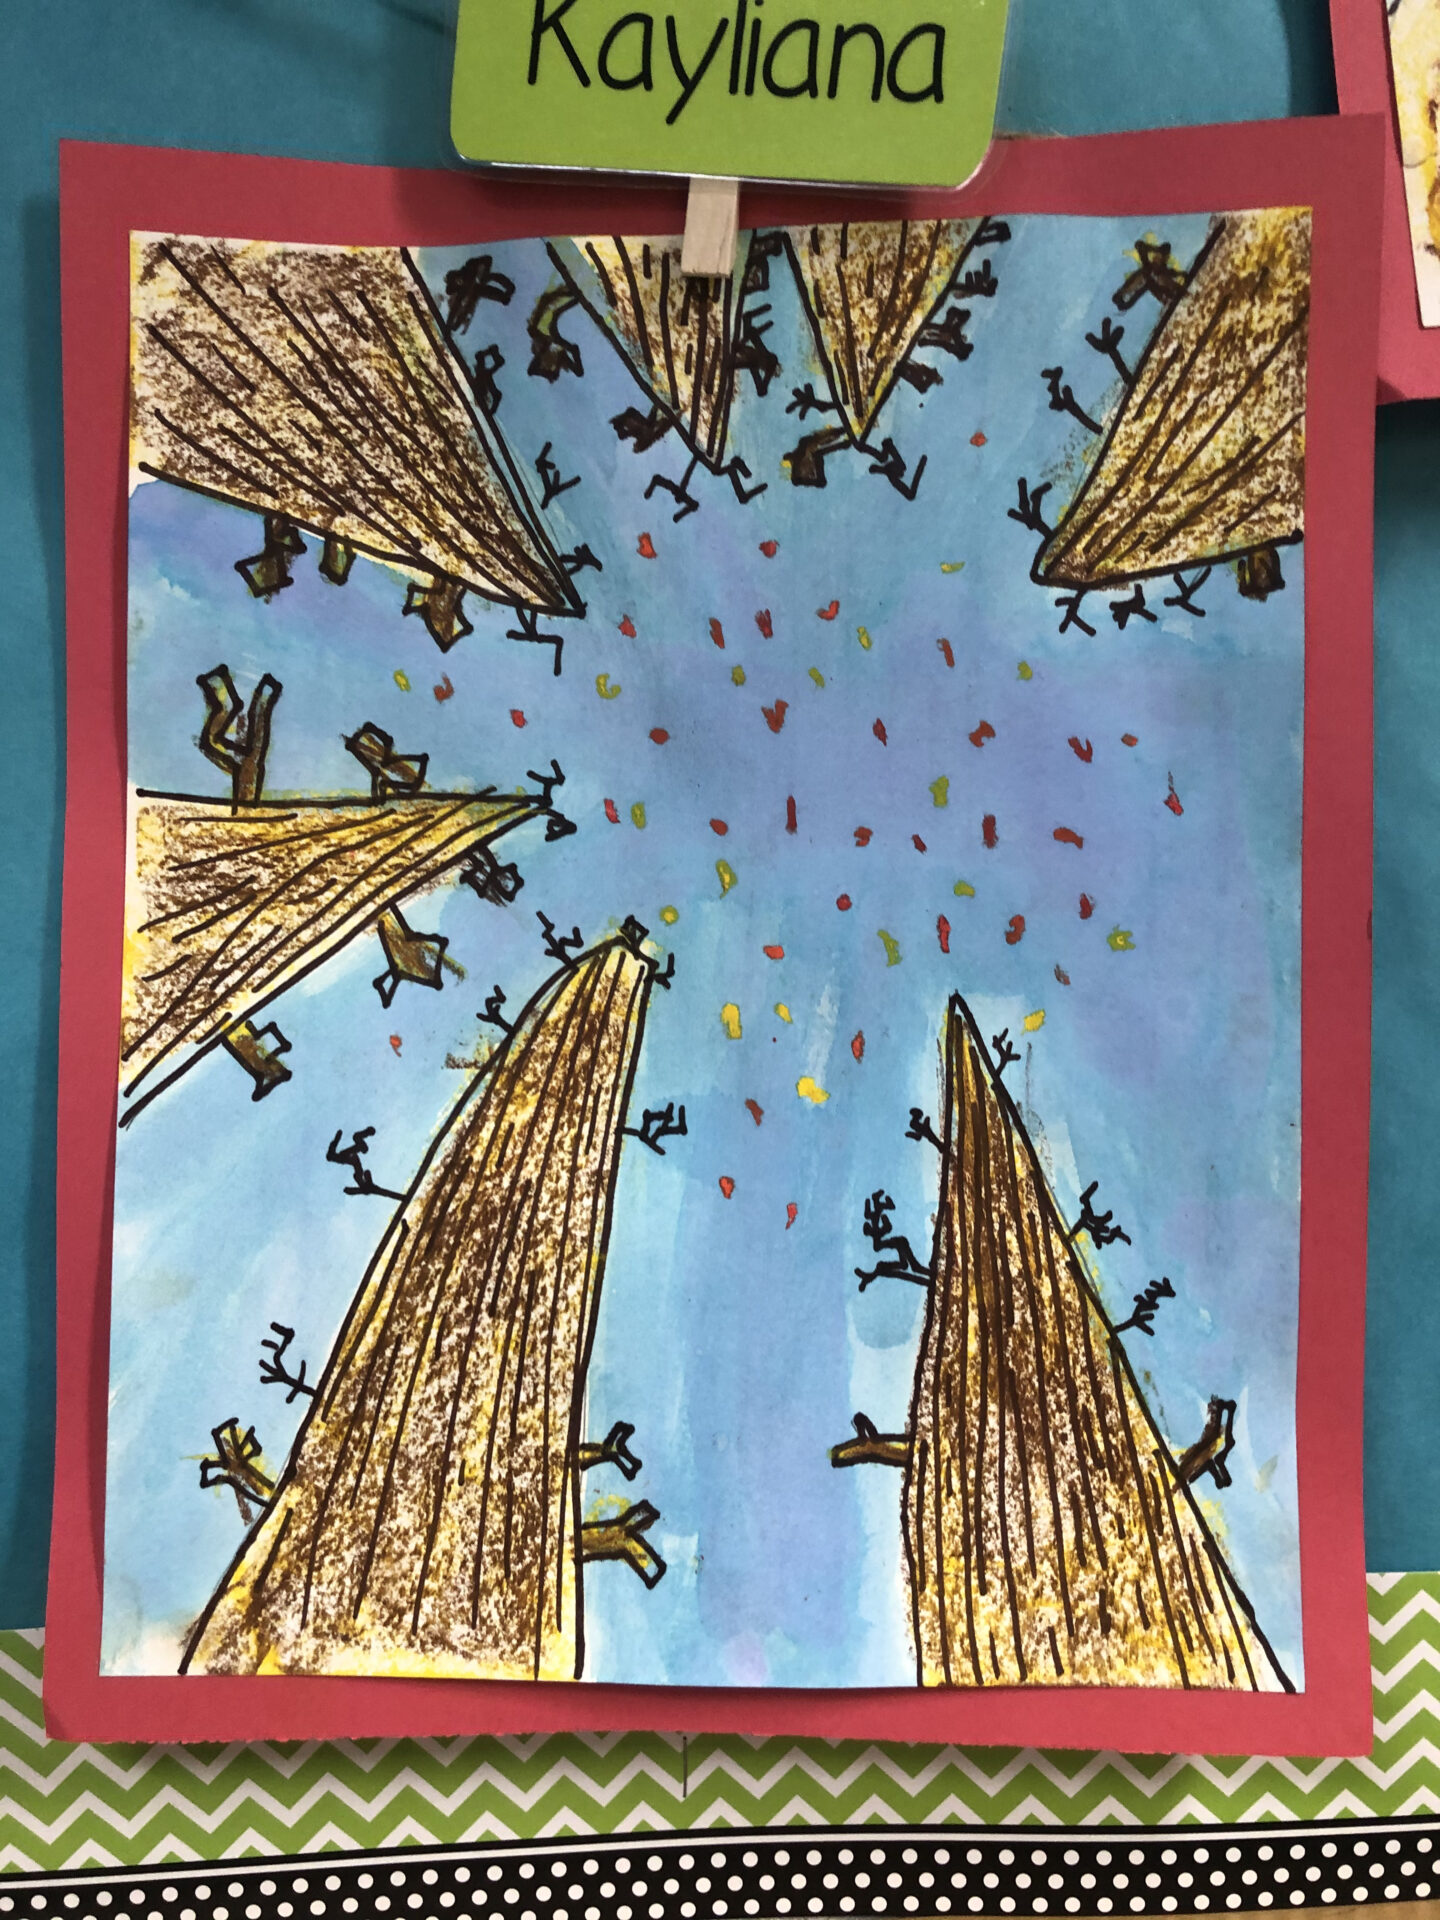 Perspective Drawing for Grade 3 - Creating ways to explore Autumn while learning about Perspective Drawing.